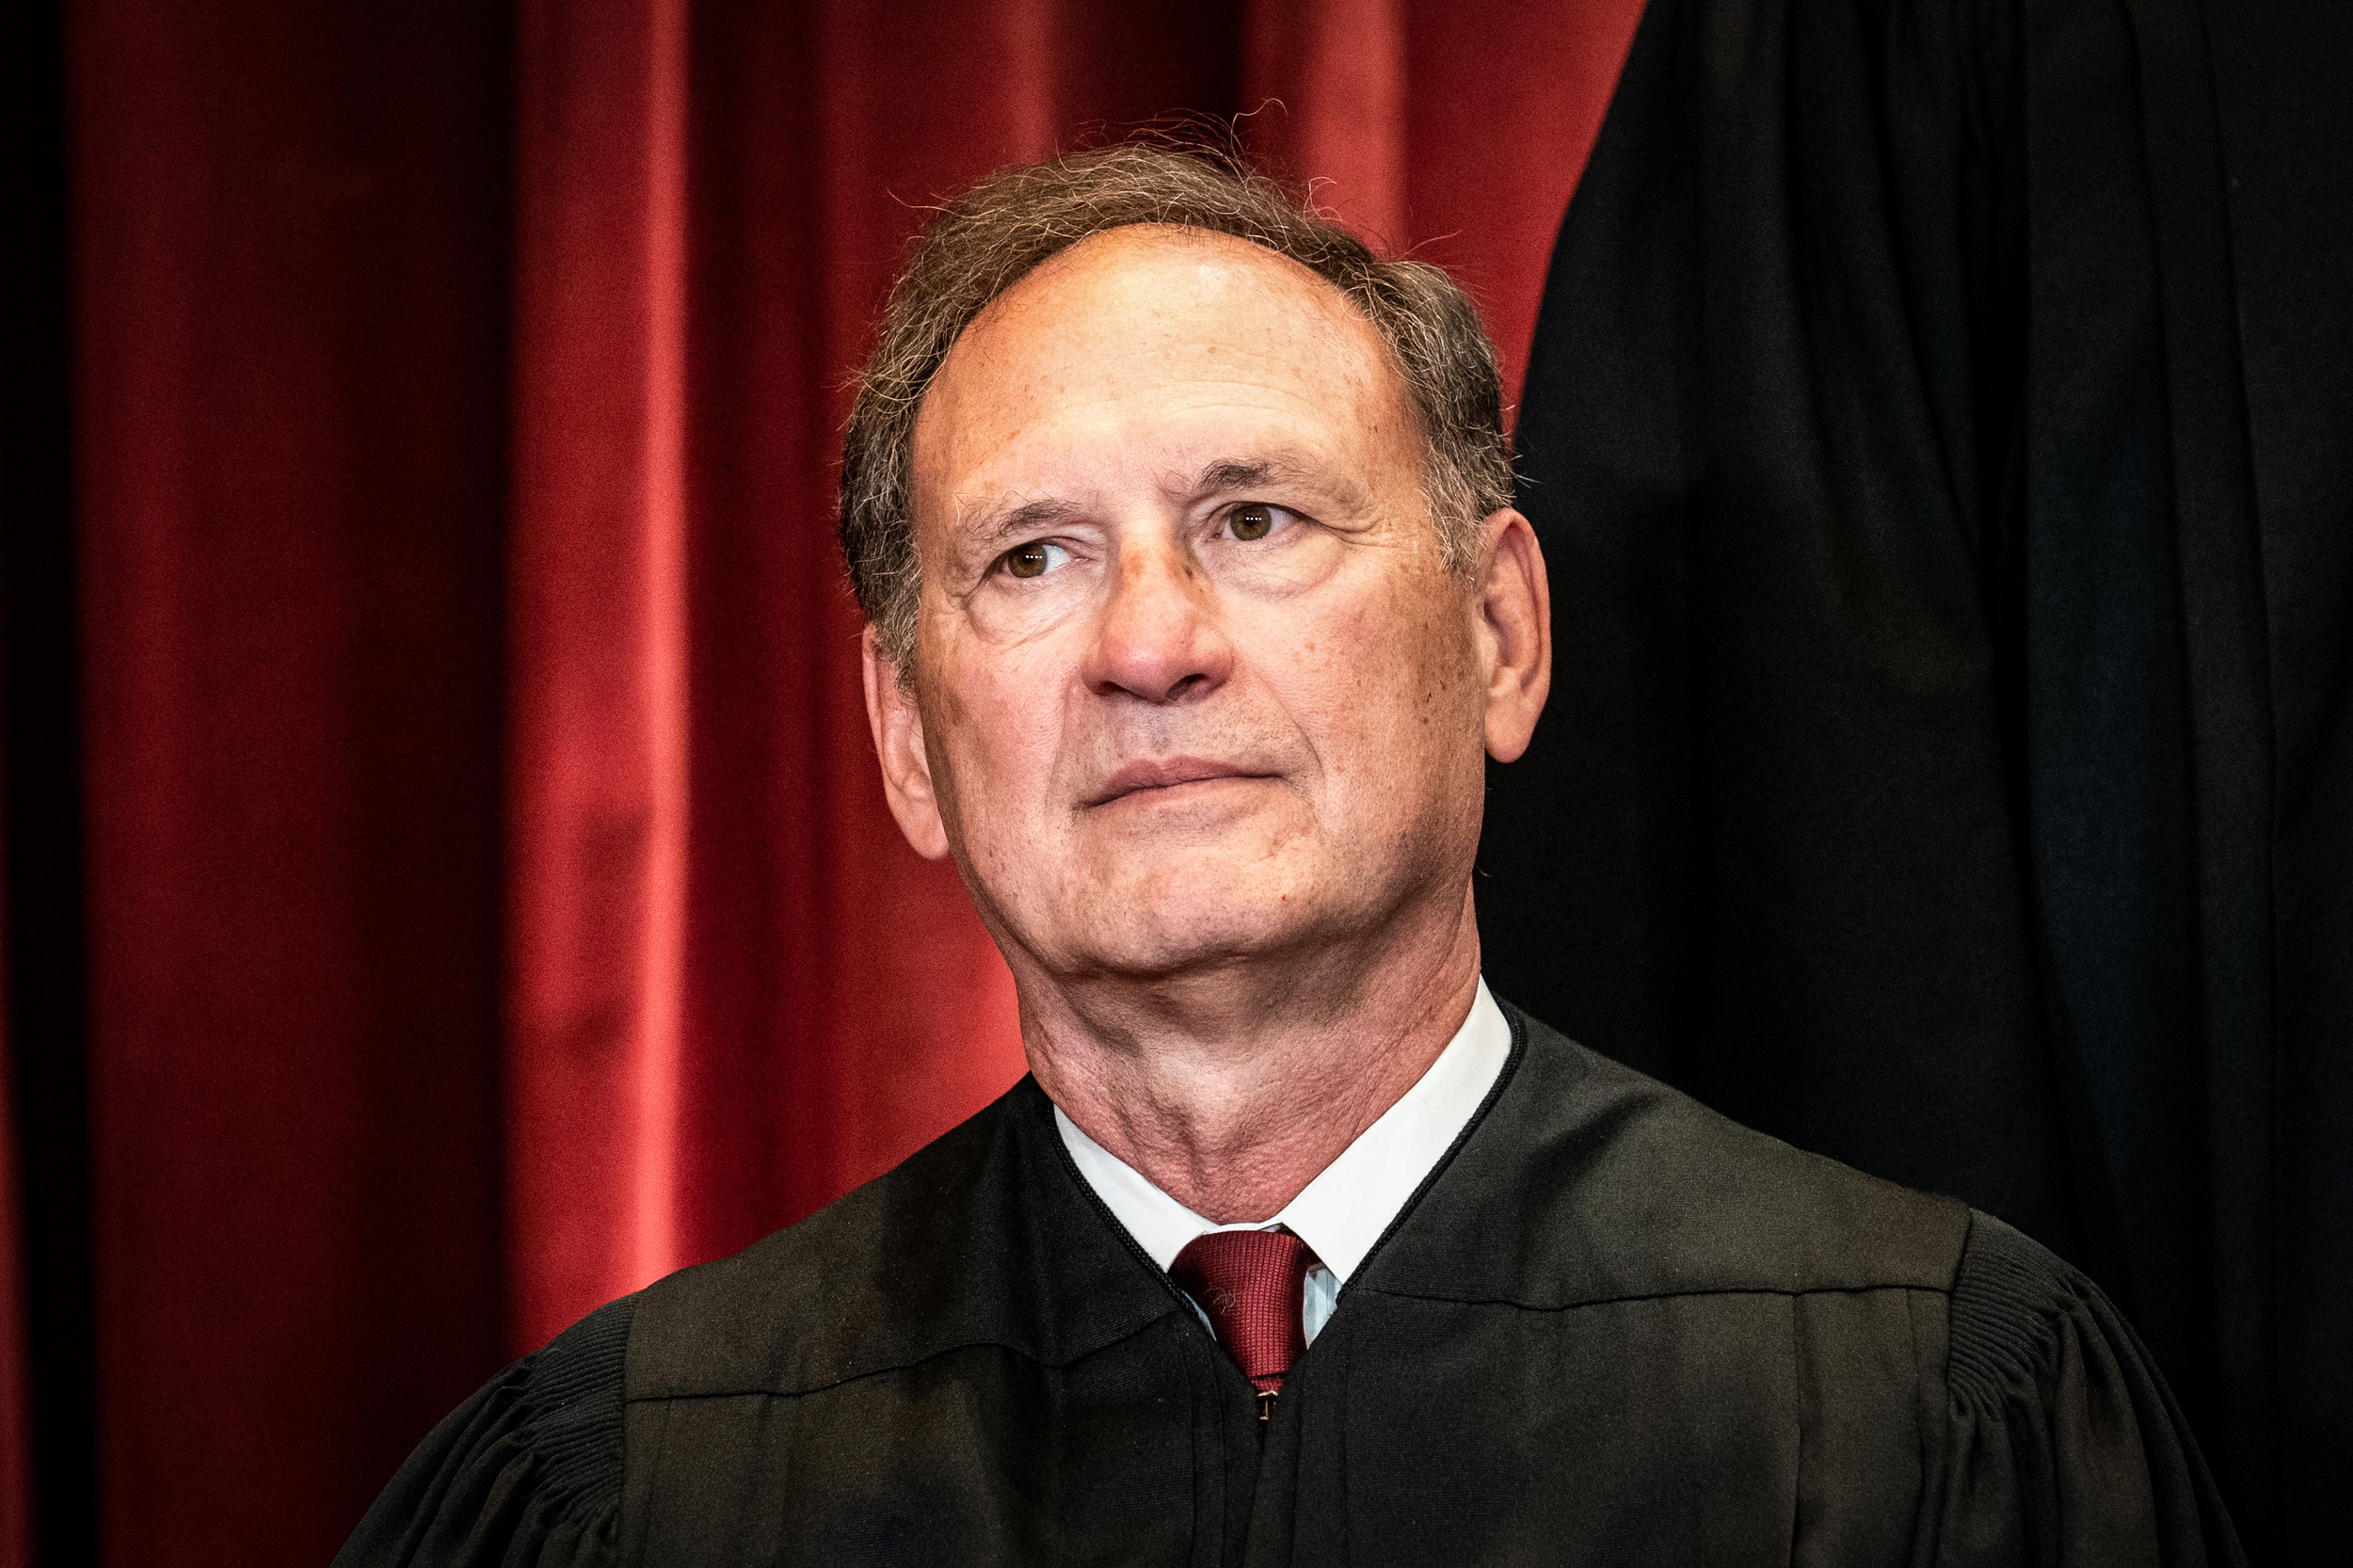 Alito says recent Supreme Court decisions aren't the work of 'a dangerous cabal'